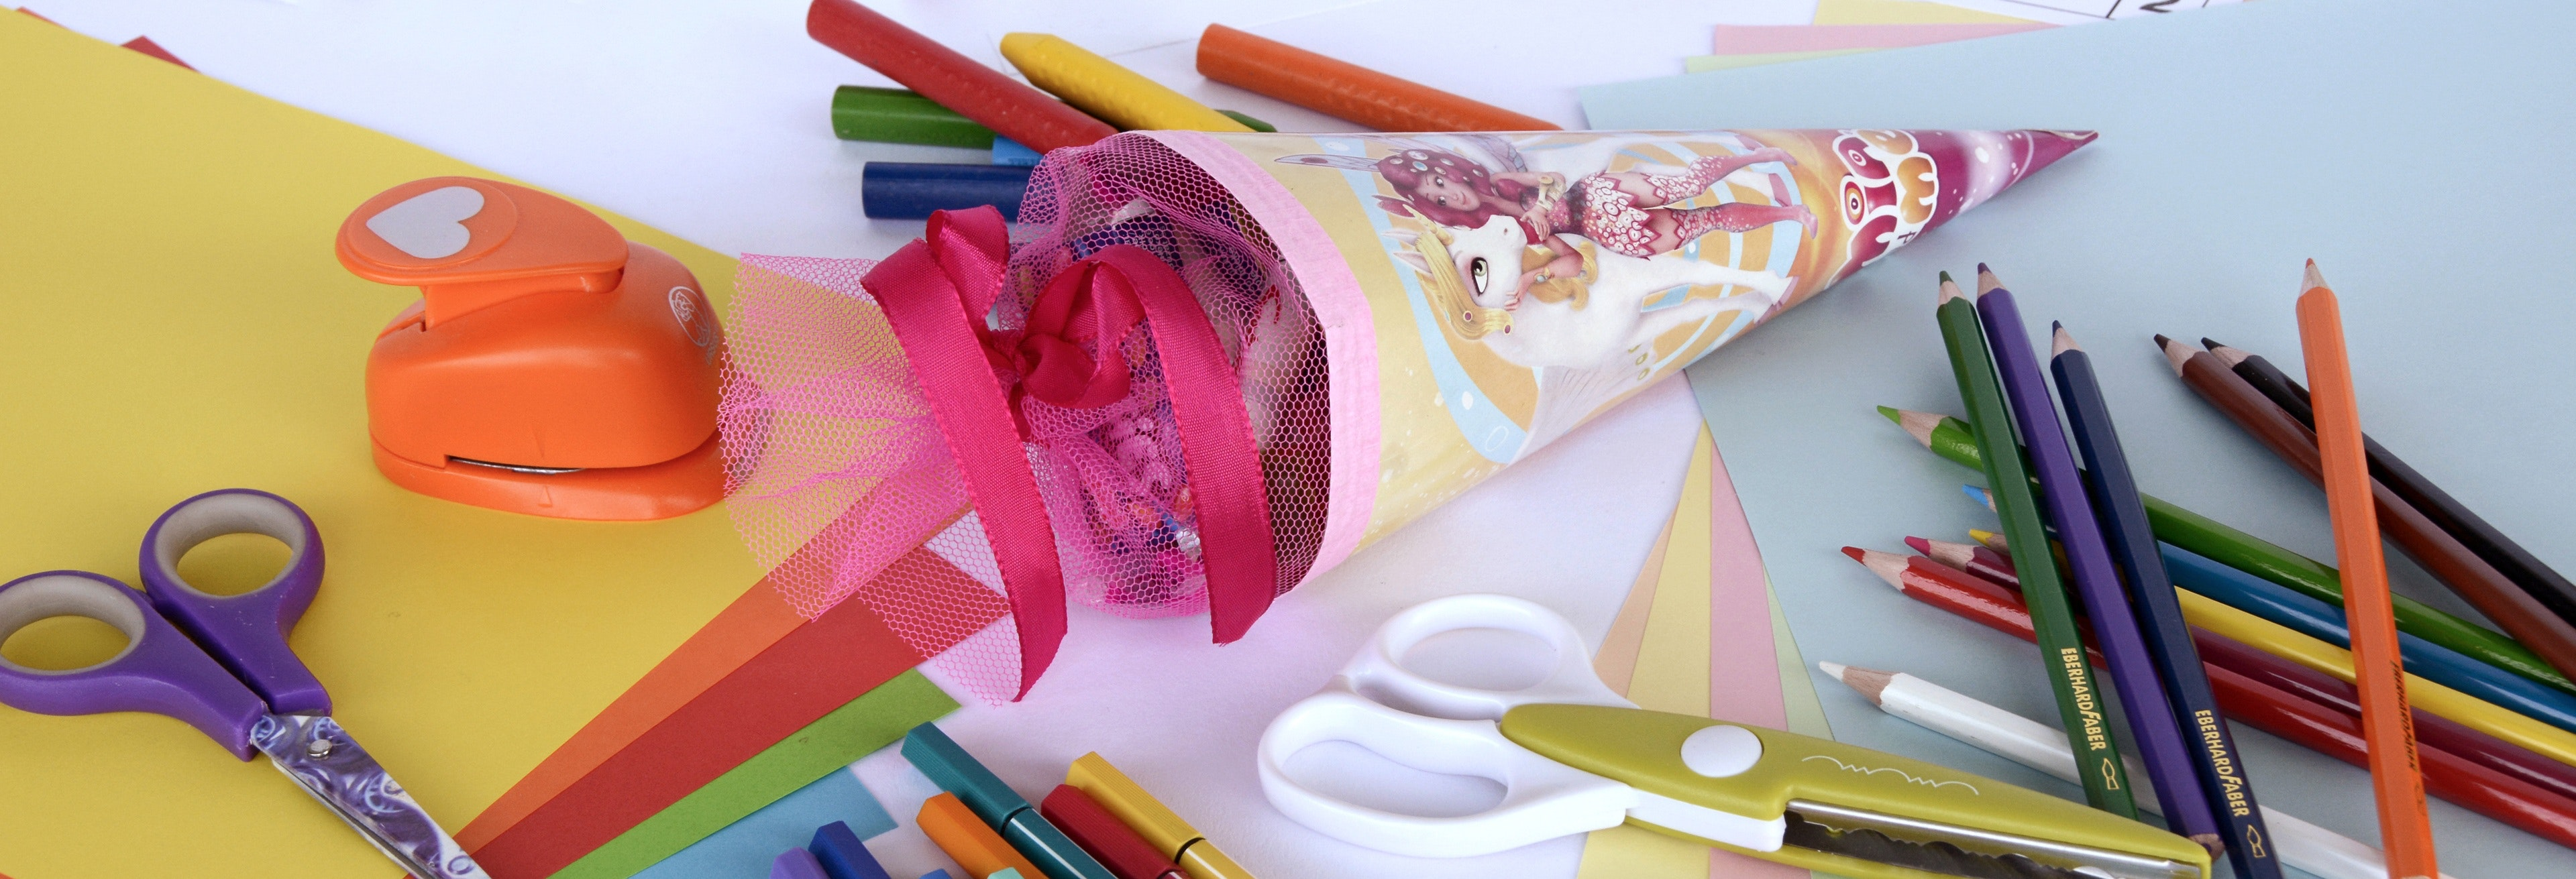 Yellow blue black purple red and brown coloring pencil near on white and green scissors photo